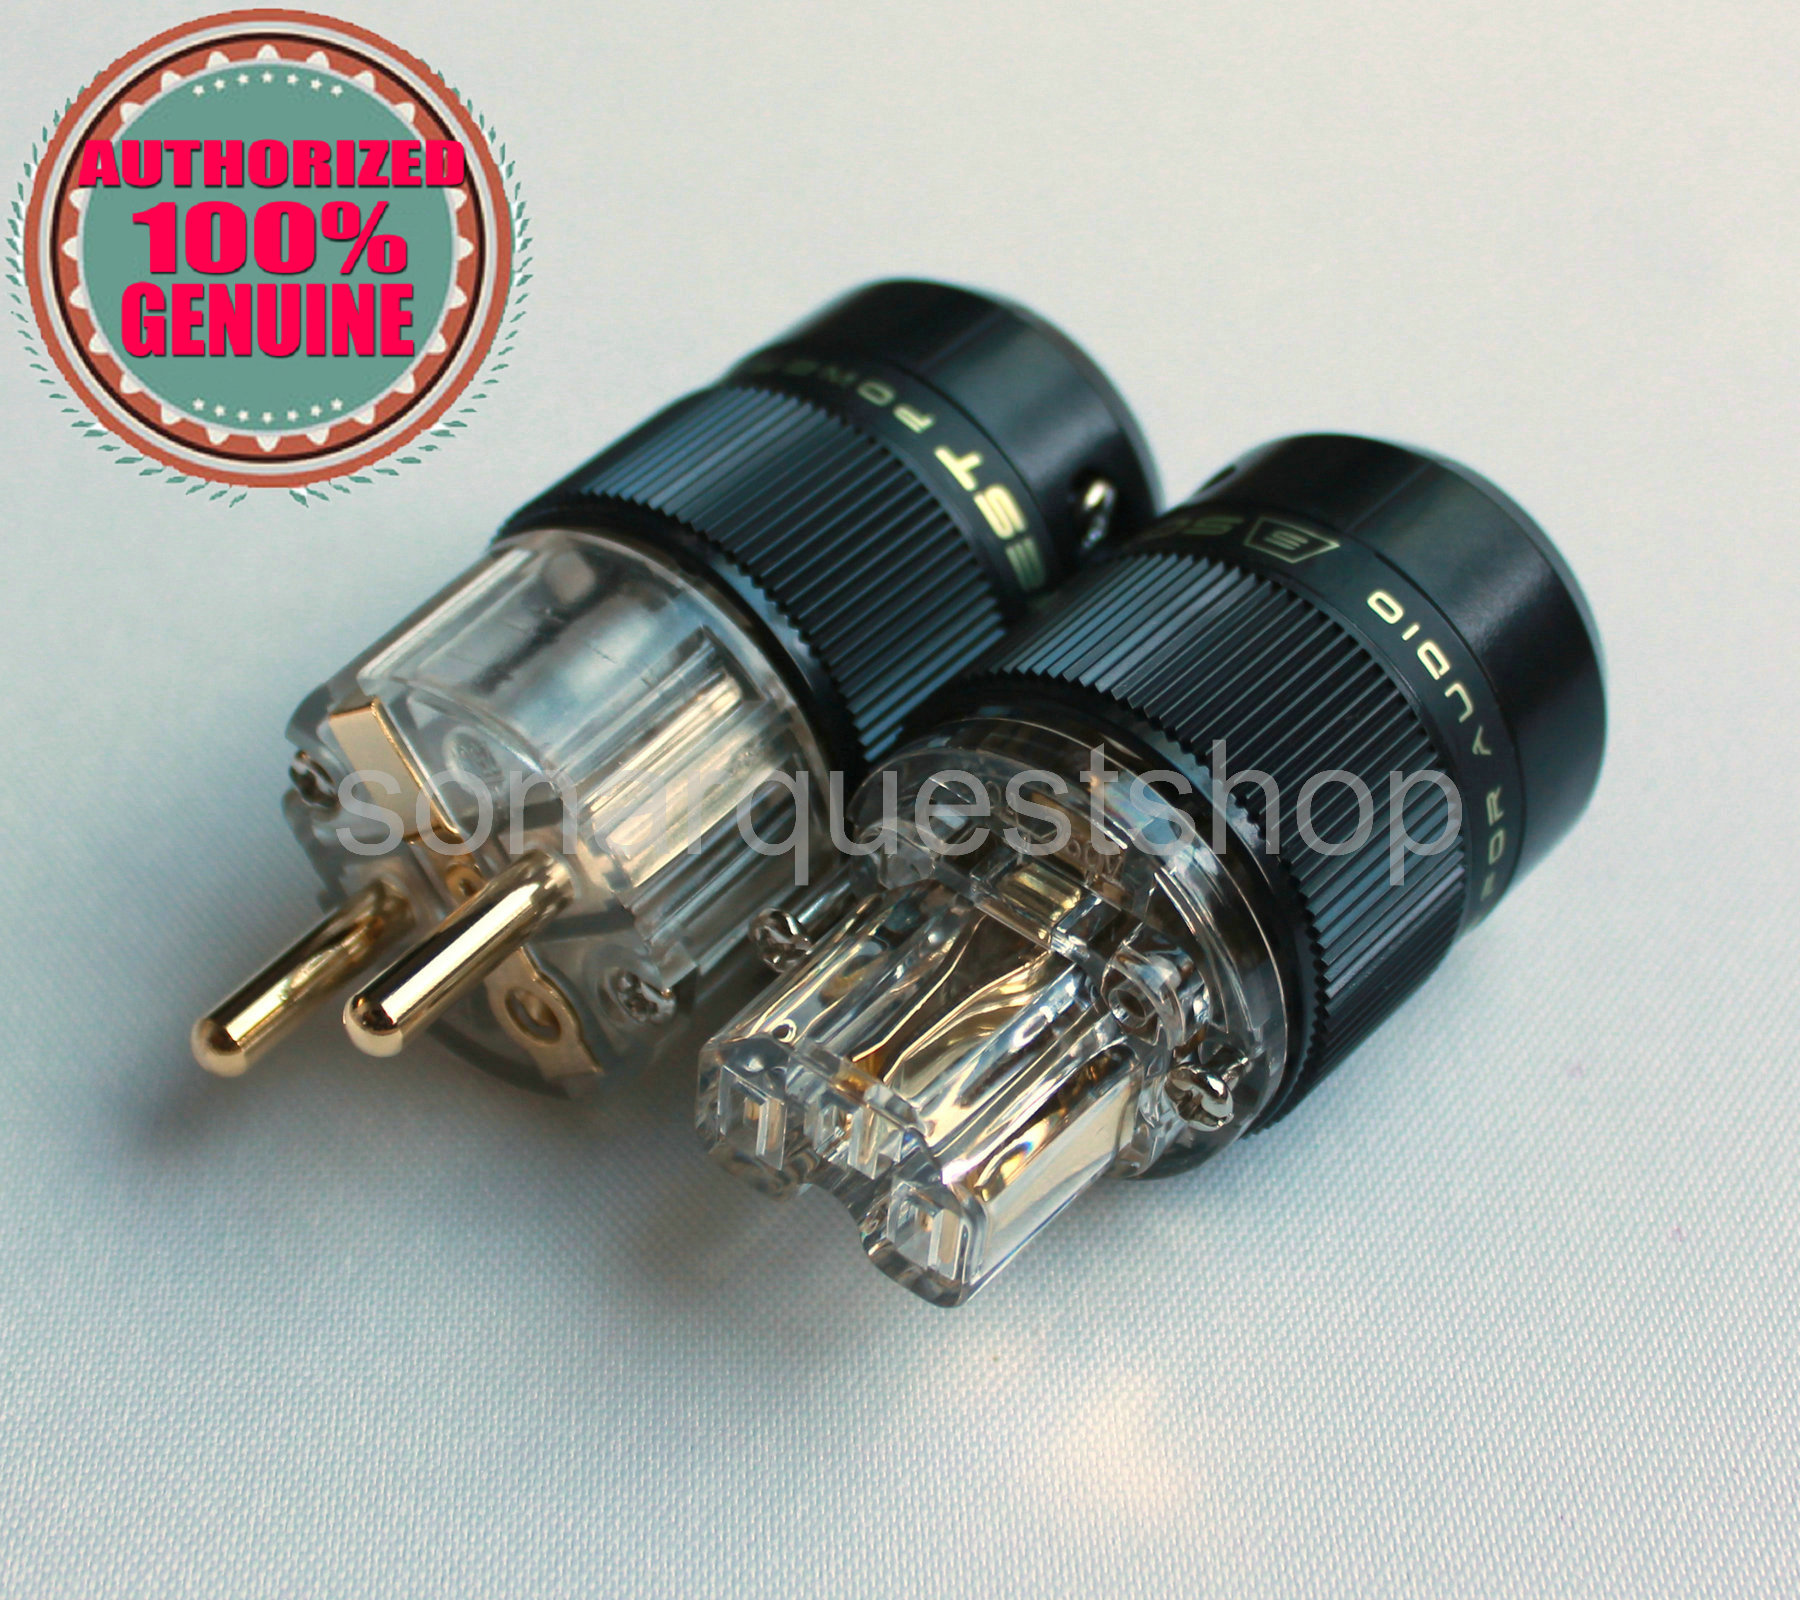 SONARQUEST SE-GE(T) + SE-GC(T) Gold Plated EU Power Plug & IEC